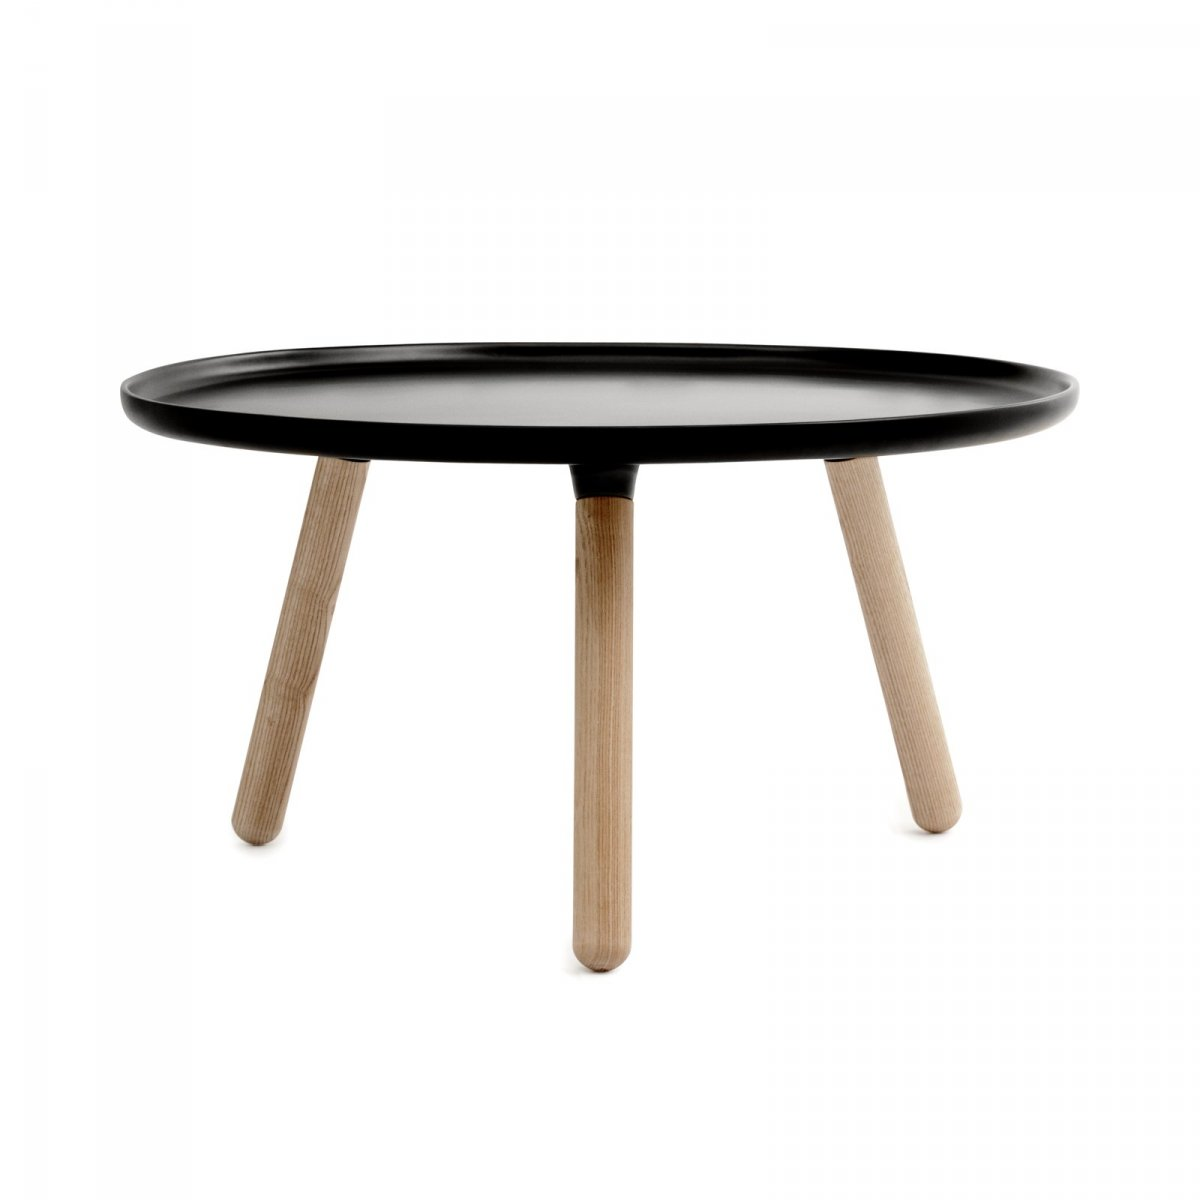 Tablo Table Large, black.